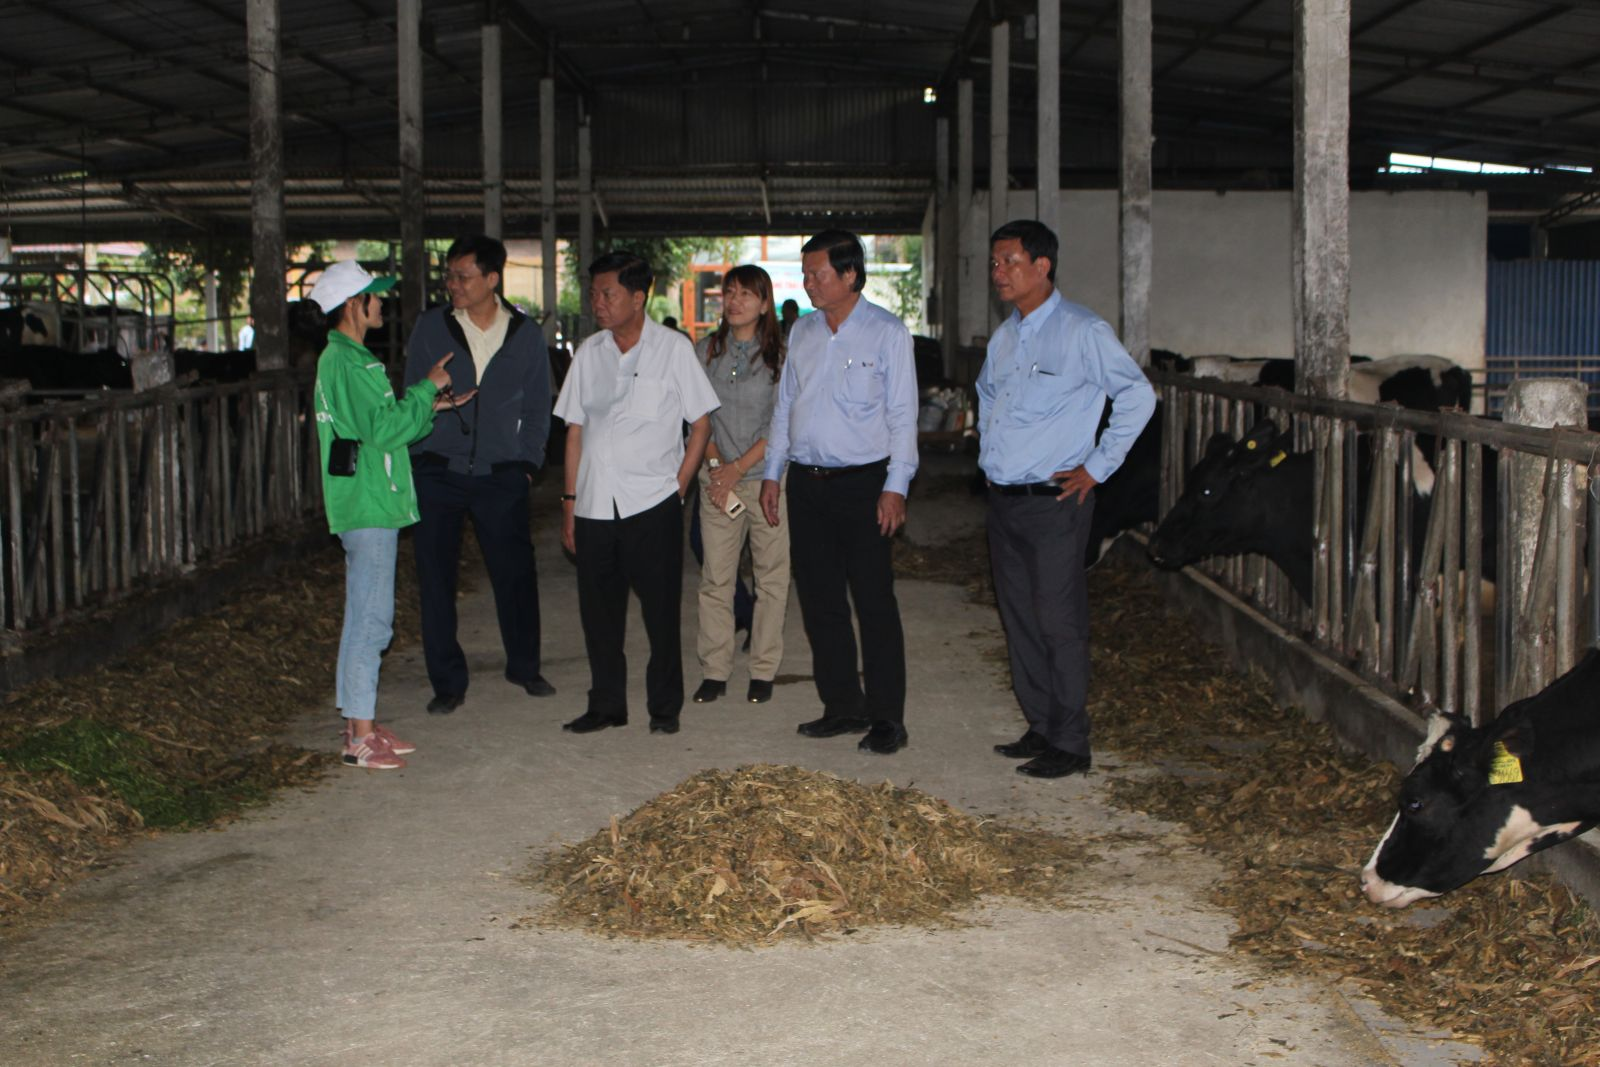 Long An mission visit a dairy cattle farm in Moc Chau district